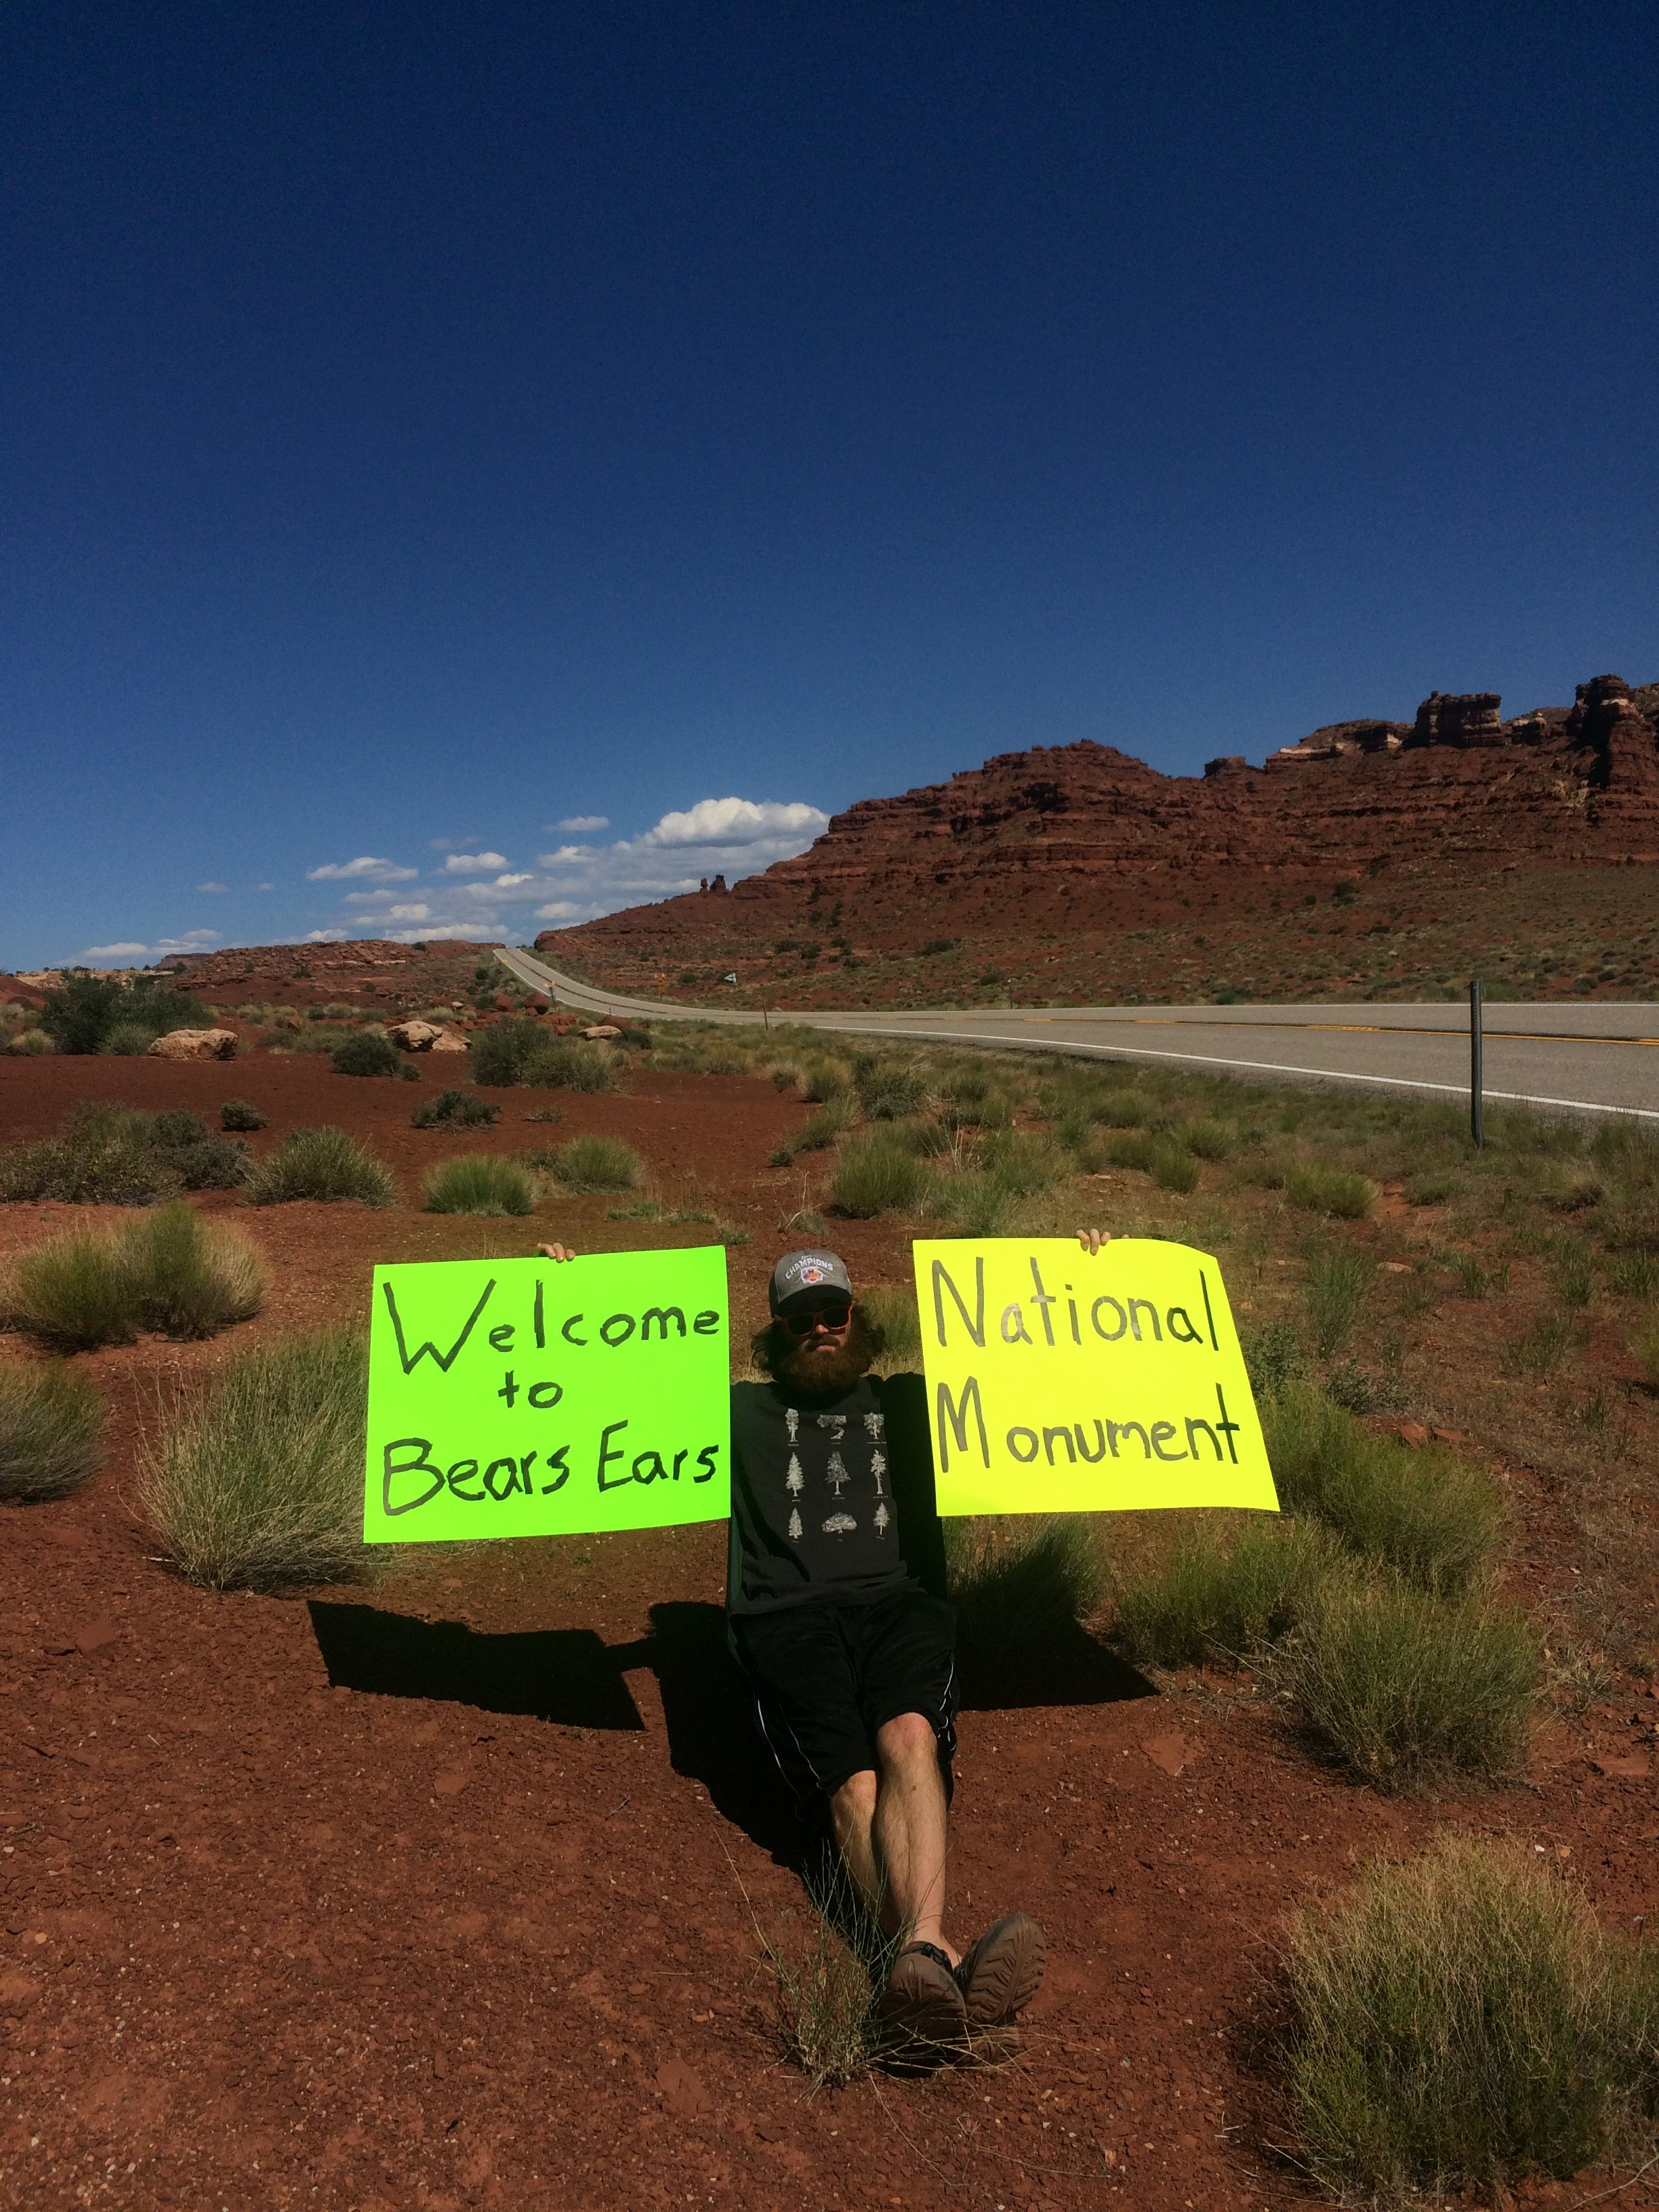 Welcome to Bears Ears National Monument